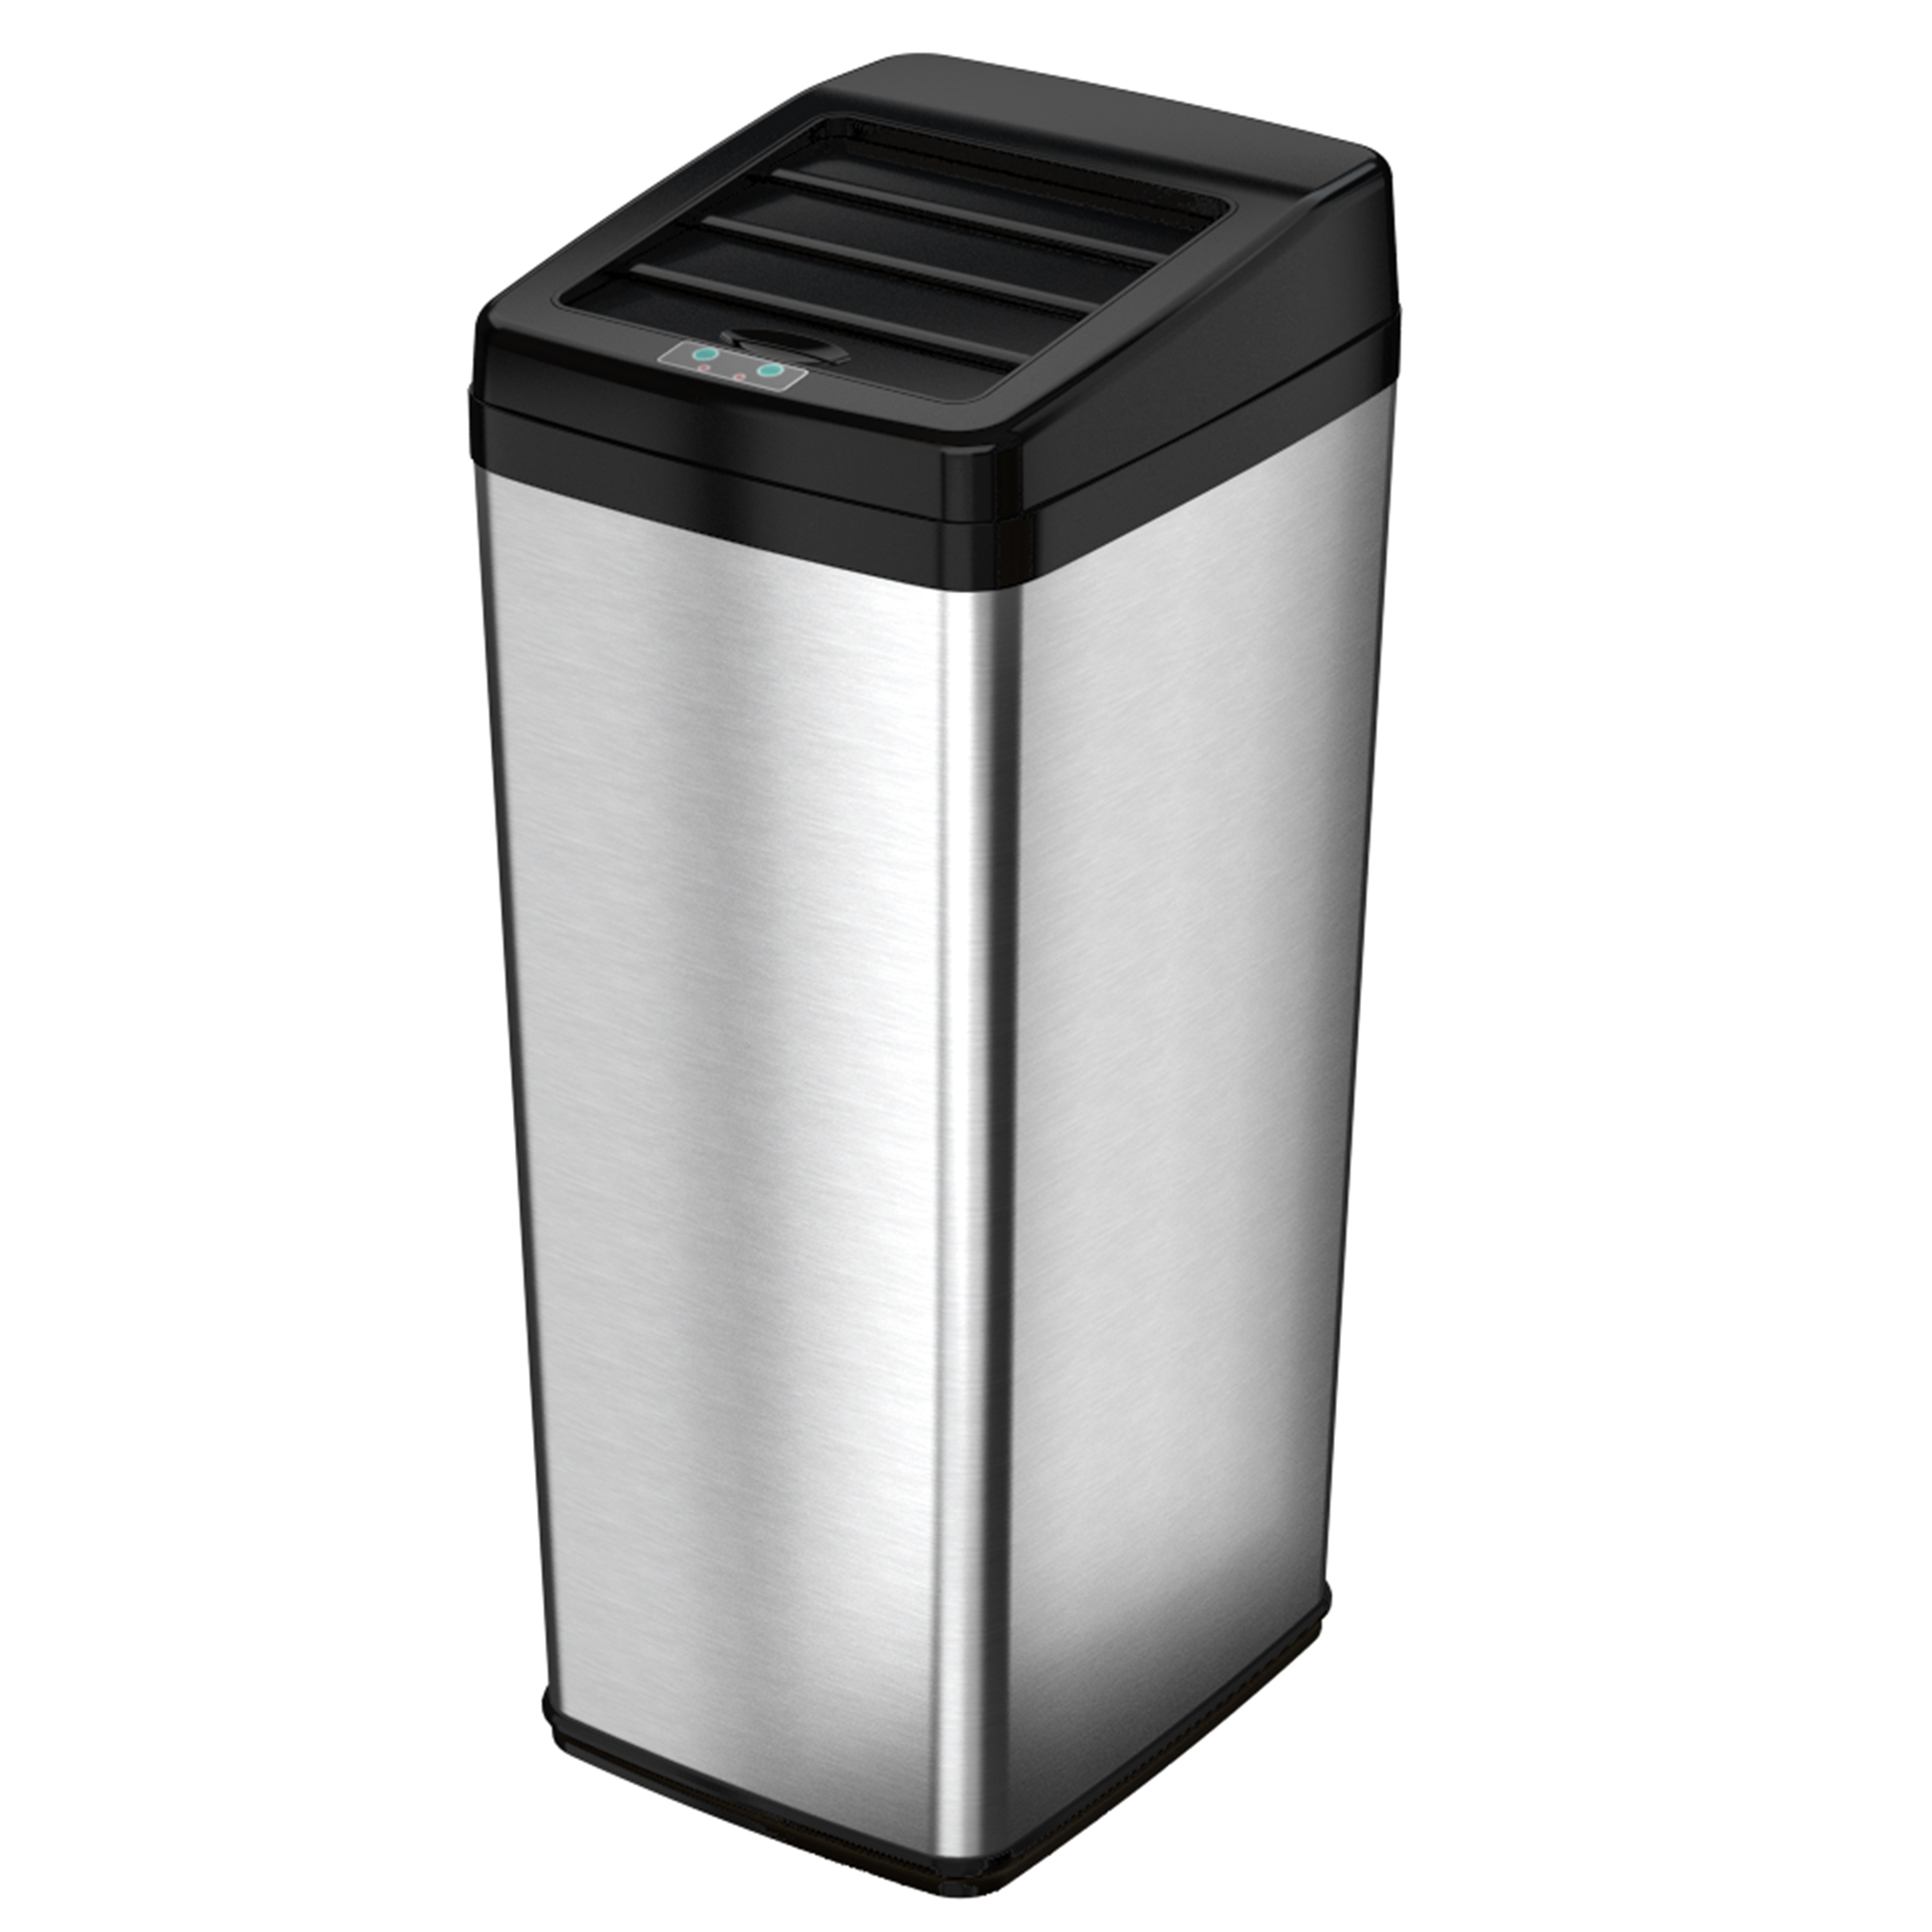 iTouchless 14 Gallon Stainless Steel Rectangular Sensor Trash Can with Retracting Lid by iTouchless